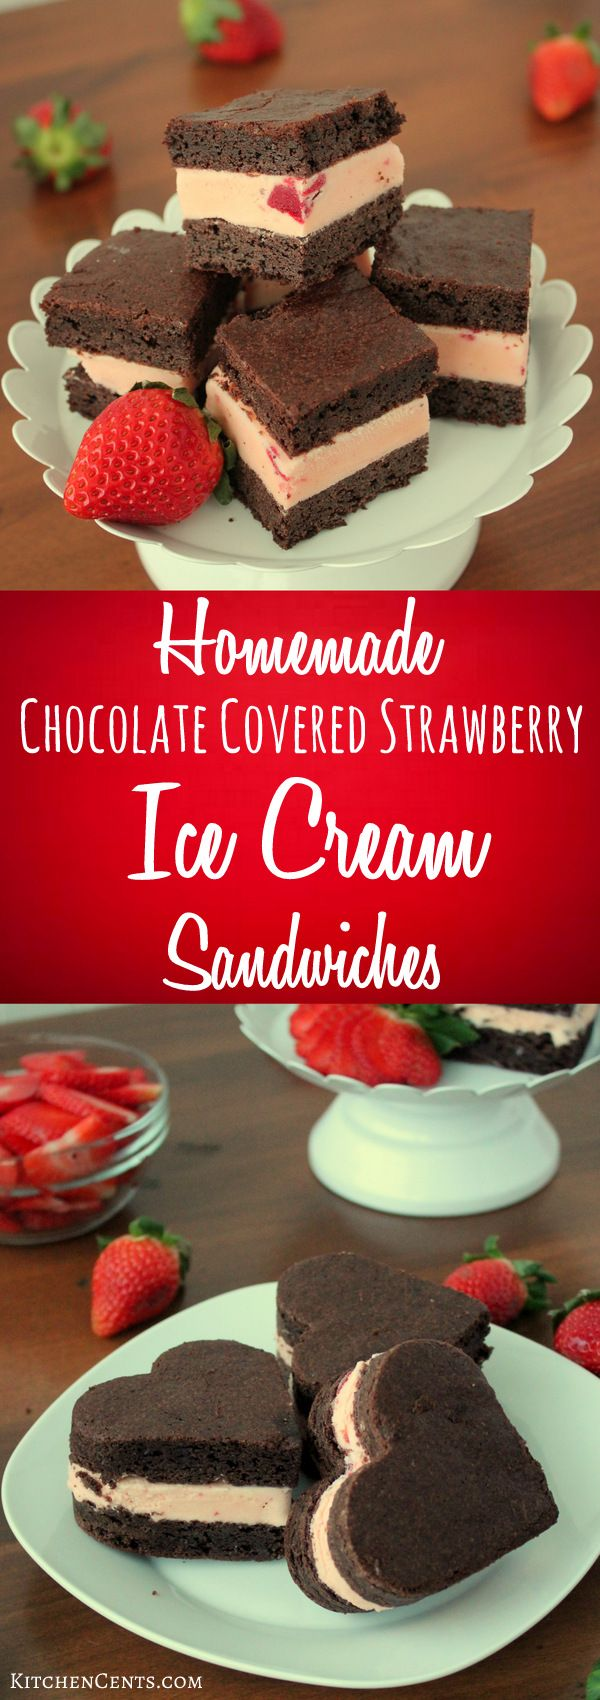 Homemade Chocolate Covered Strawberry Ice Cream Sandwiches | KitchenCents.com With strawberry ice cream smooshed between two chocolate brownies layers, these Chocolate Covered Strawberry Ice Cream Sandwiches are a fun frozen twist on the classic chocolate covered strawberry.